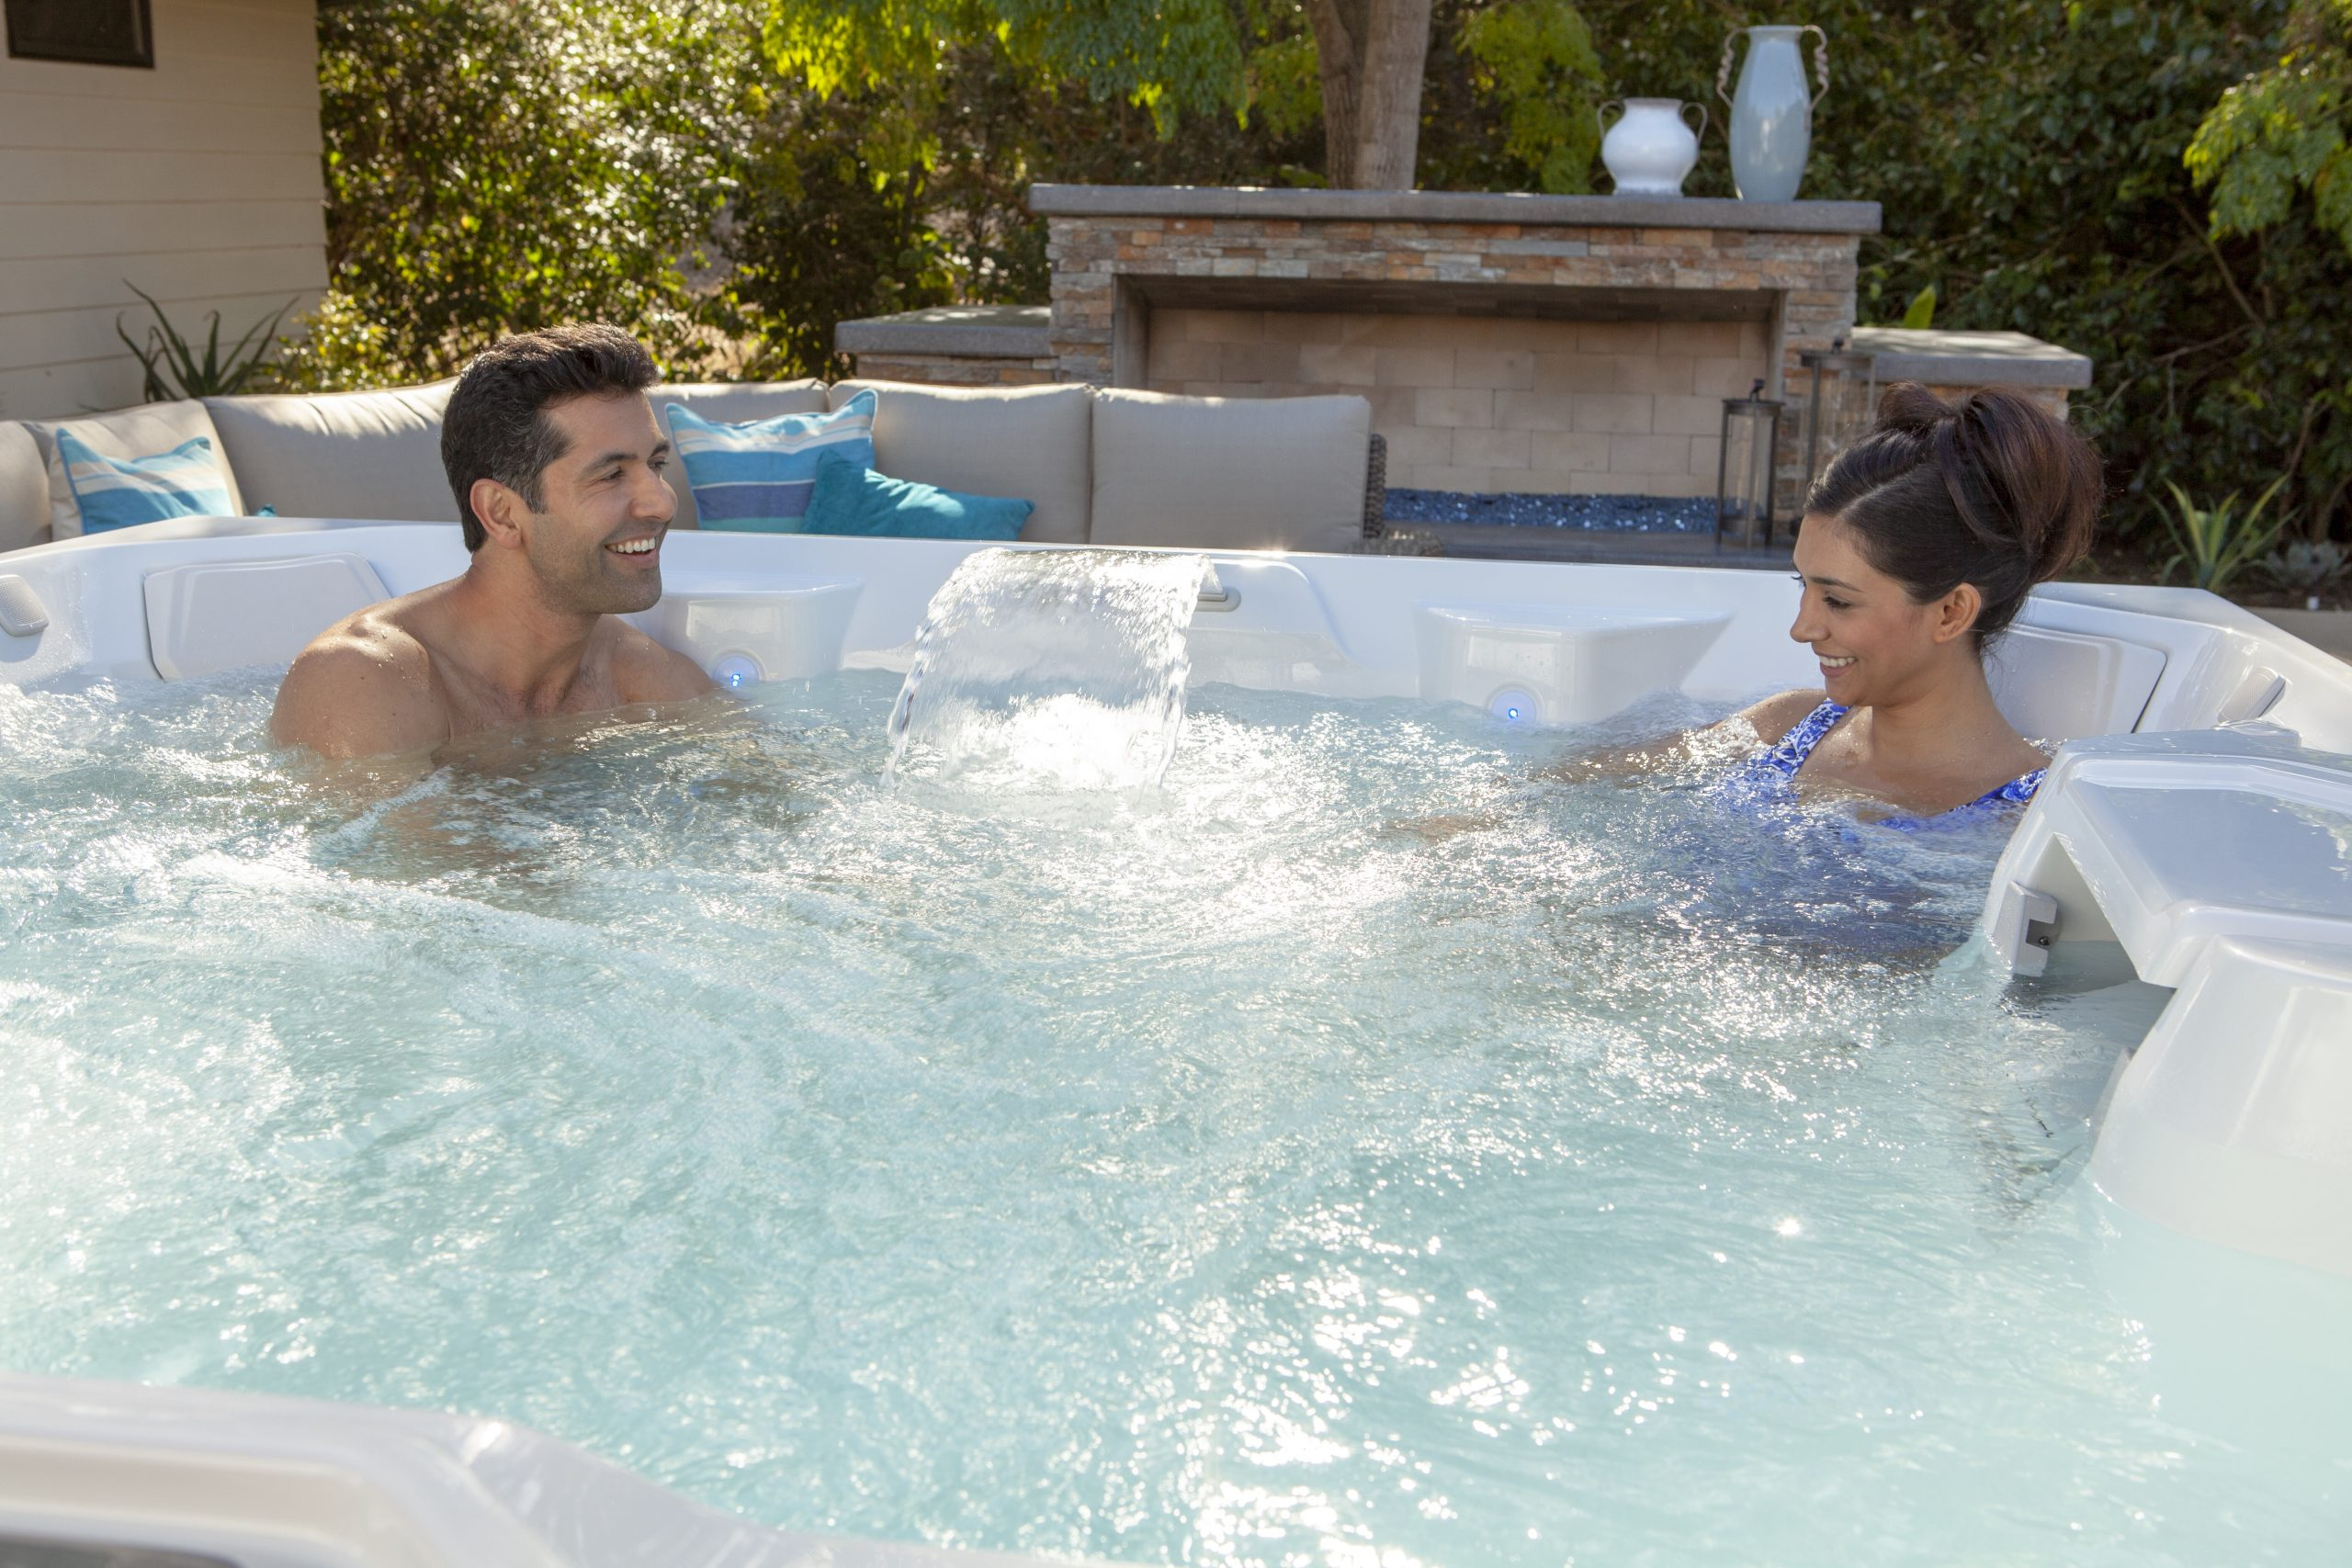 How To Choose The Hot Tub That's Right For You